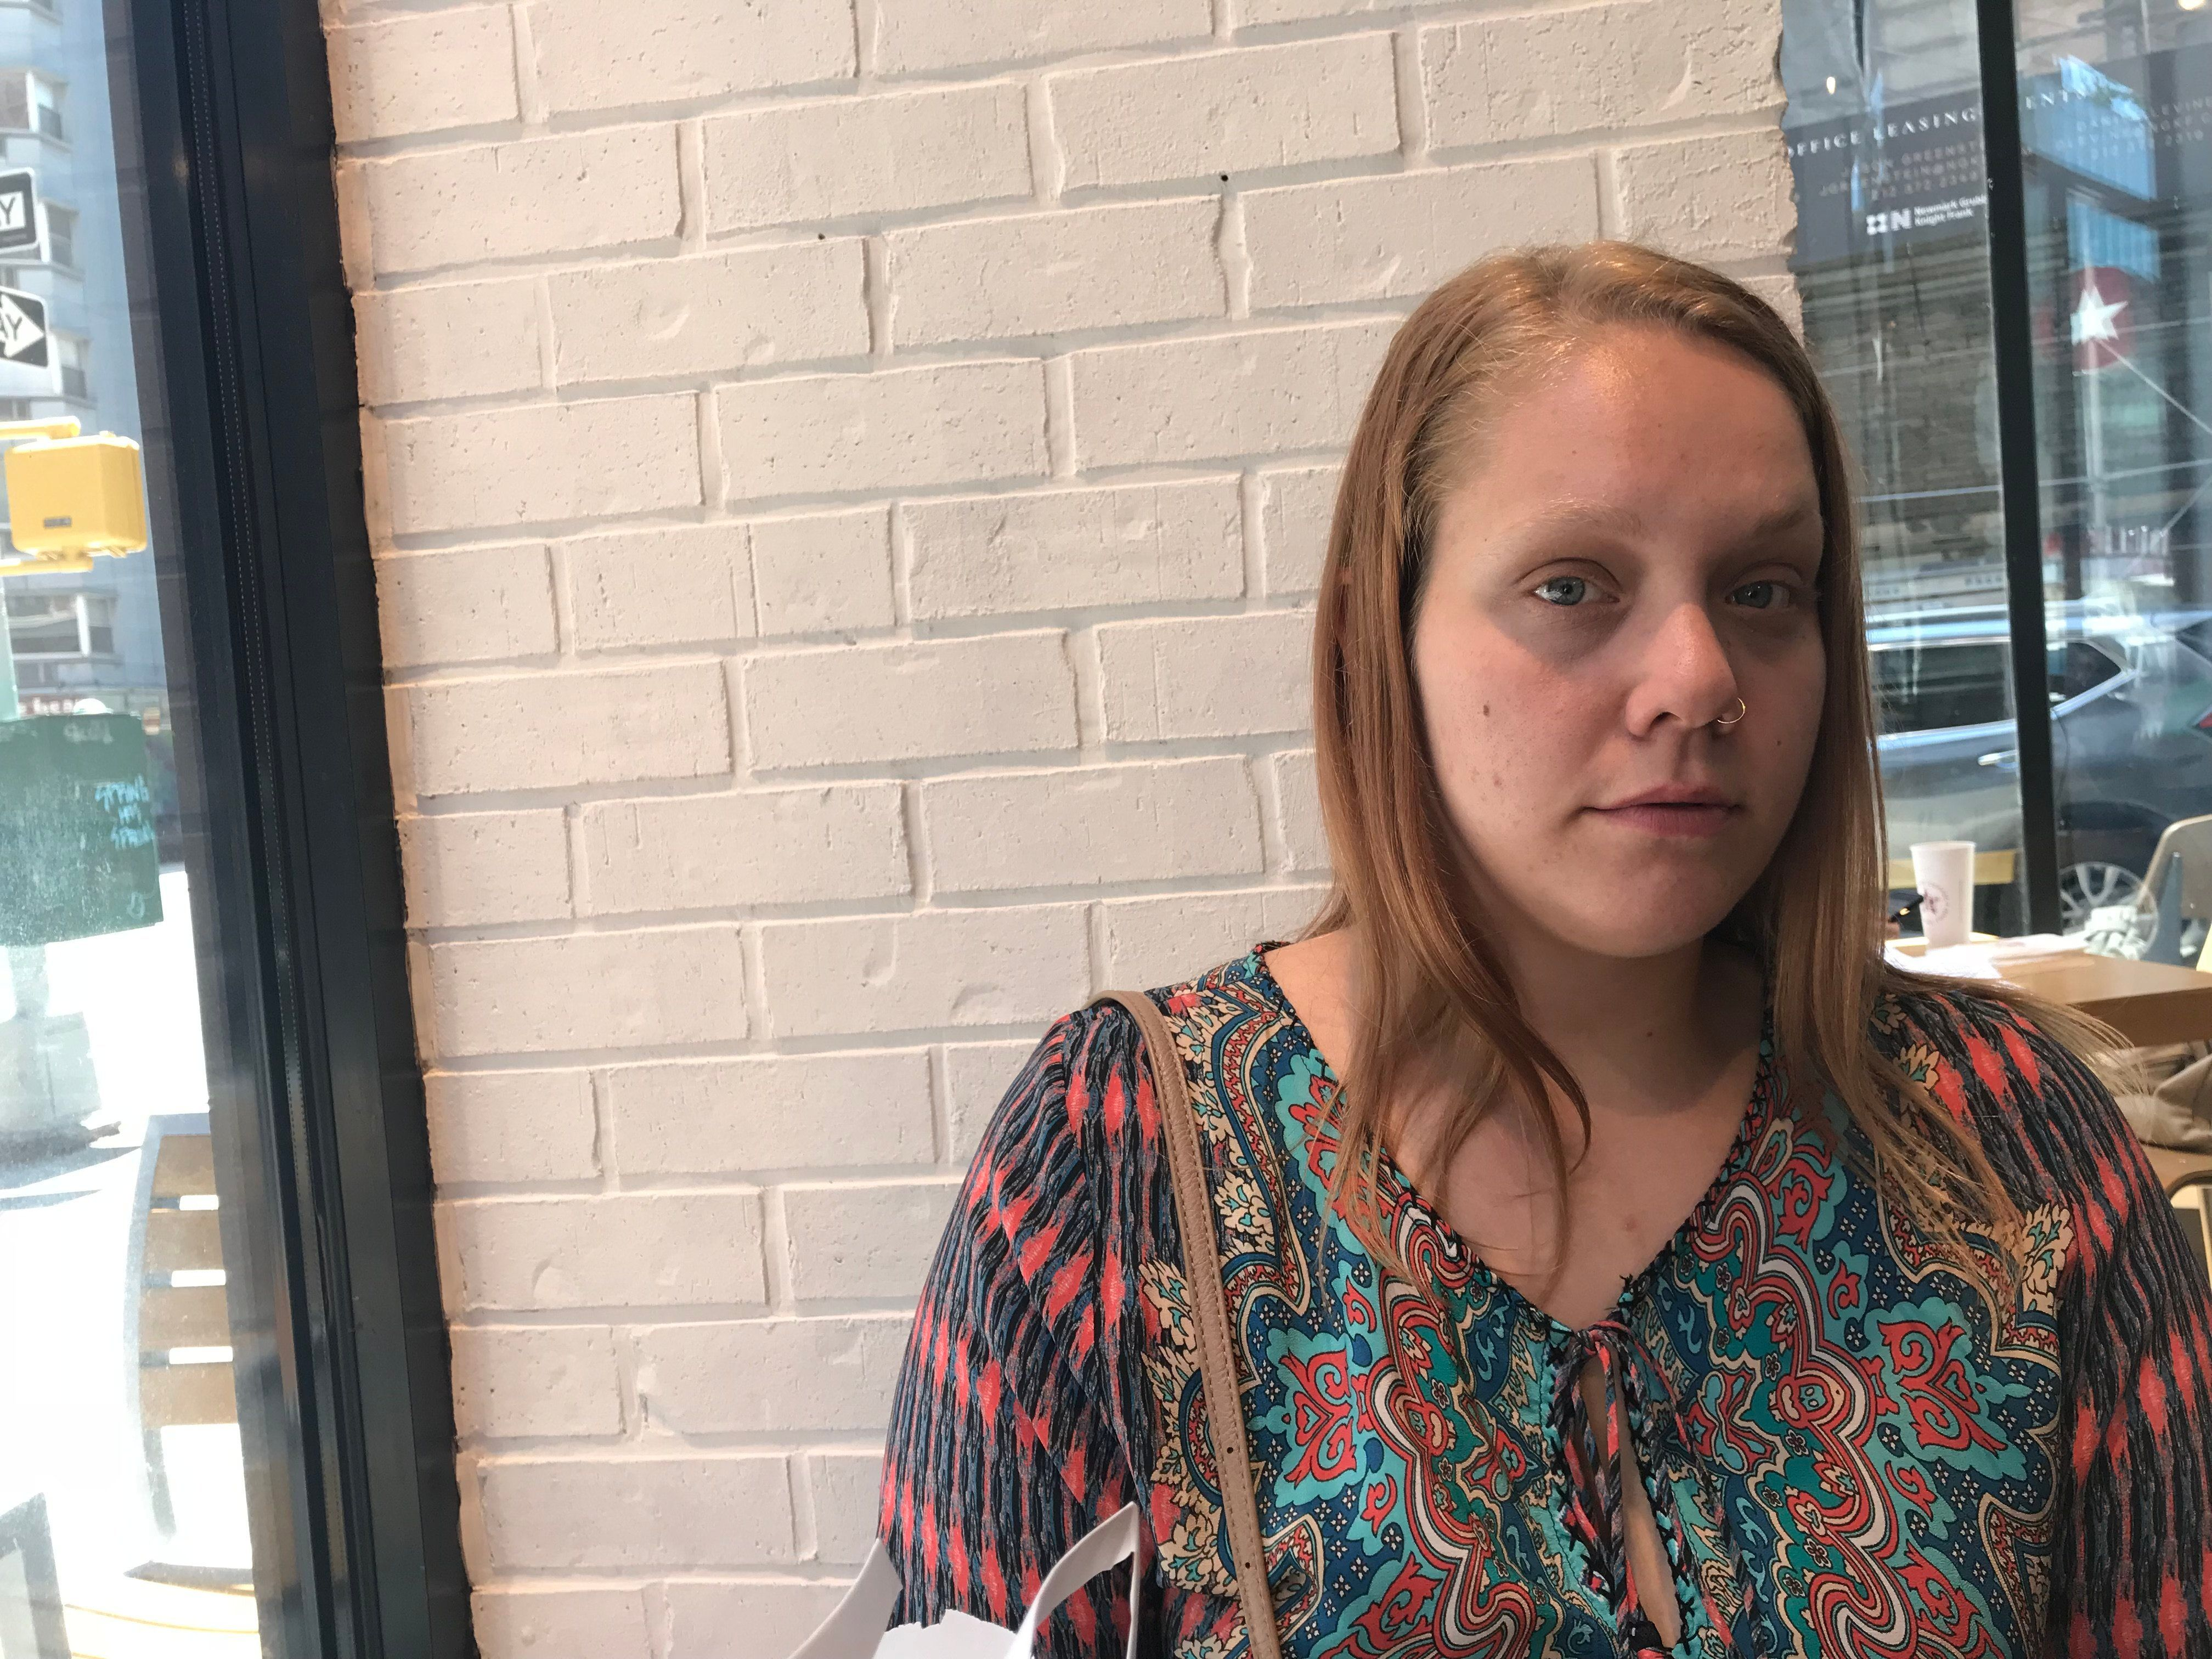 Carley Perez tried to call for help when a home care client threatened her.